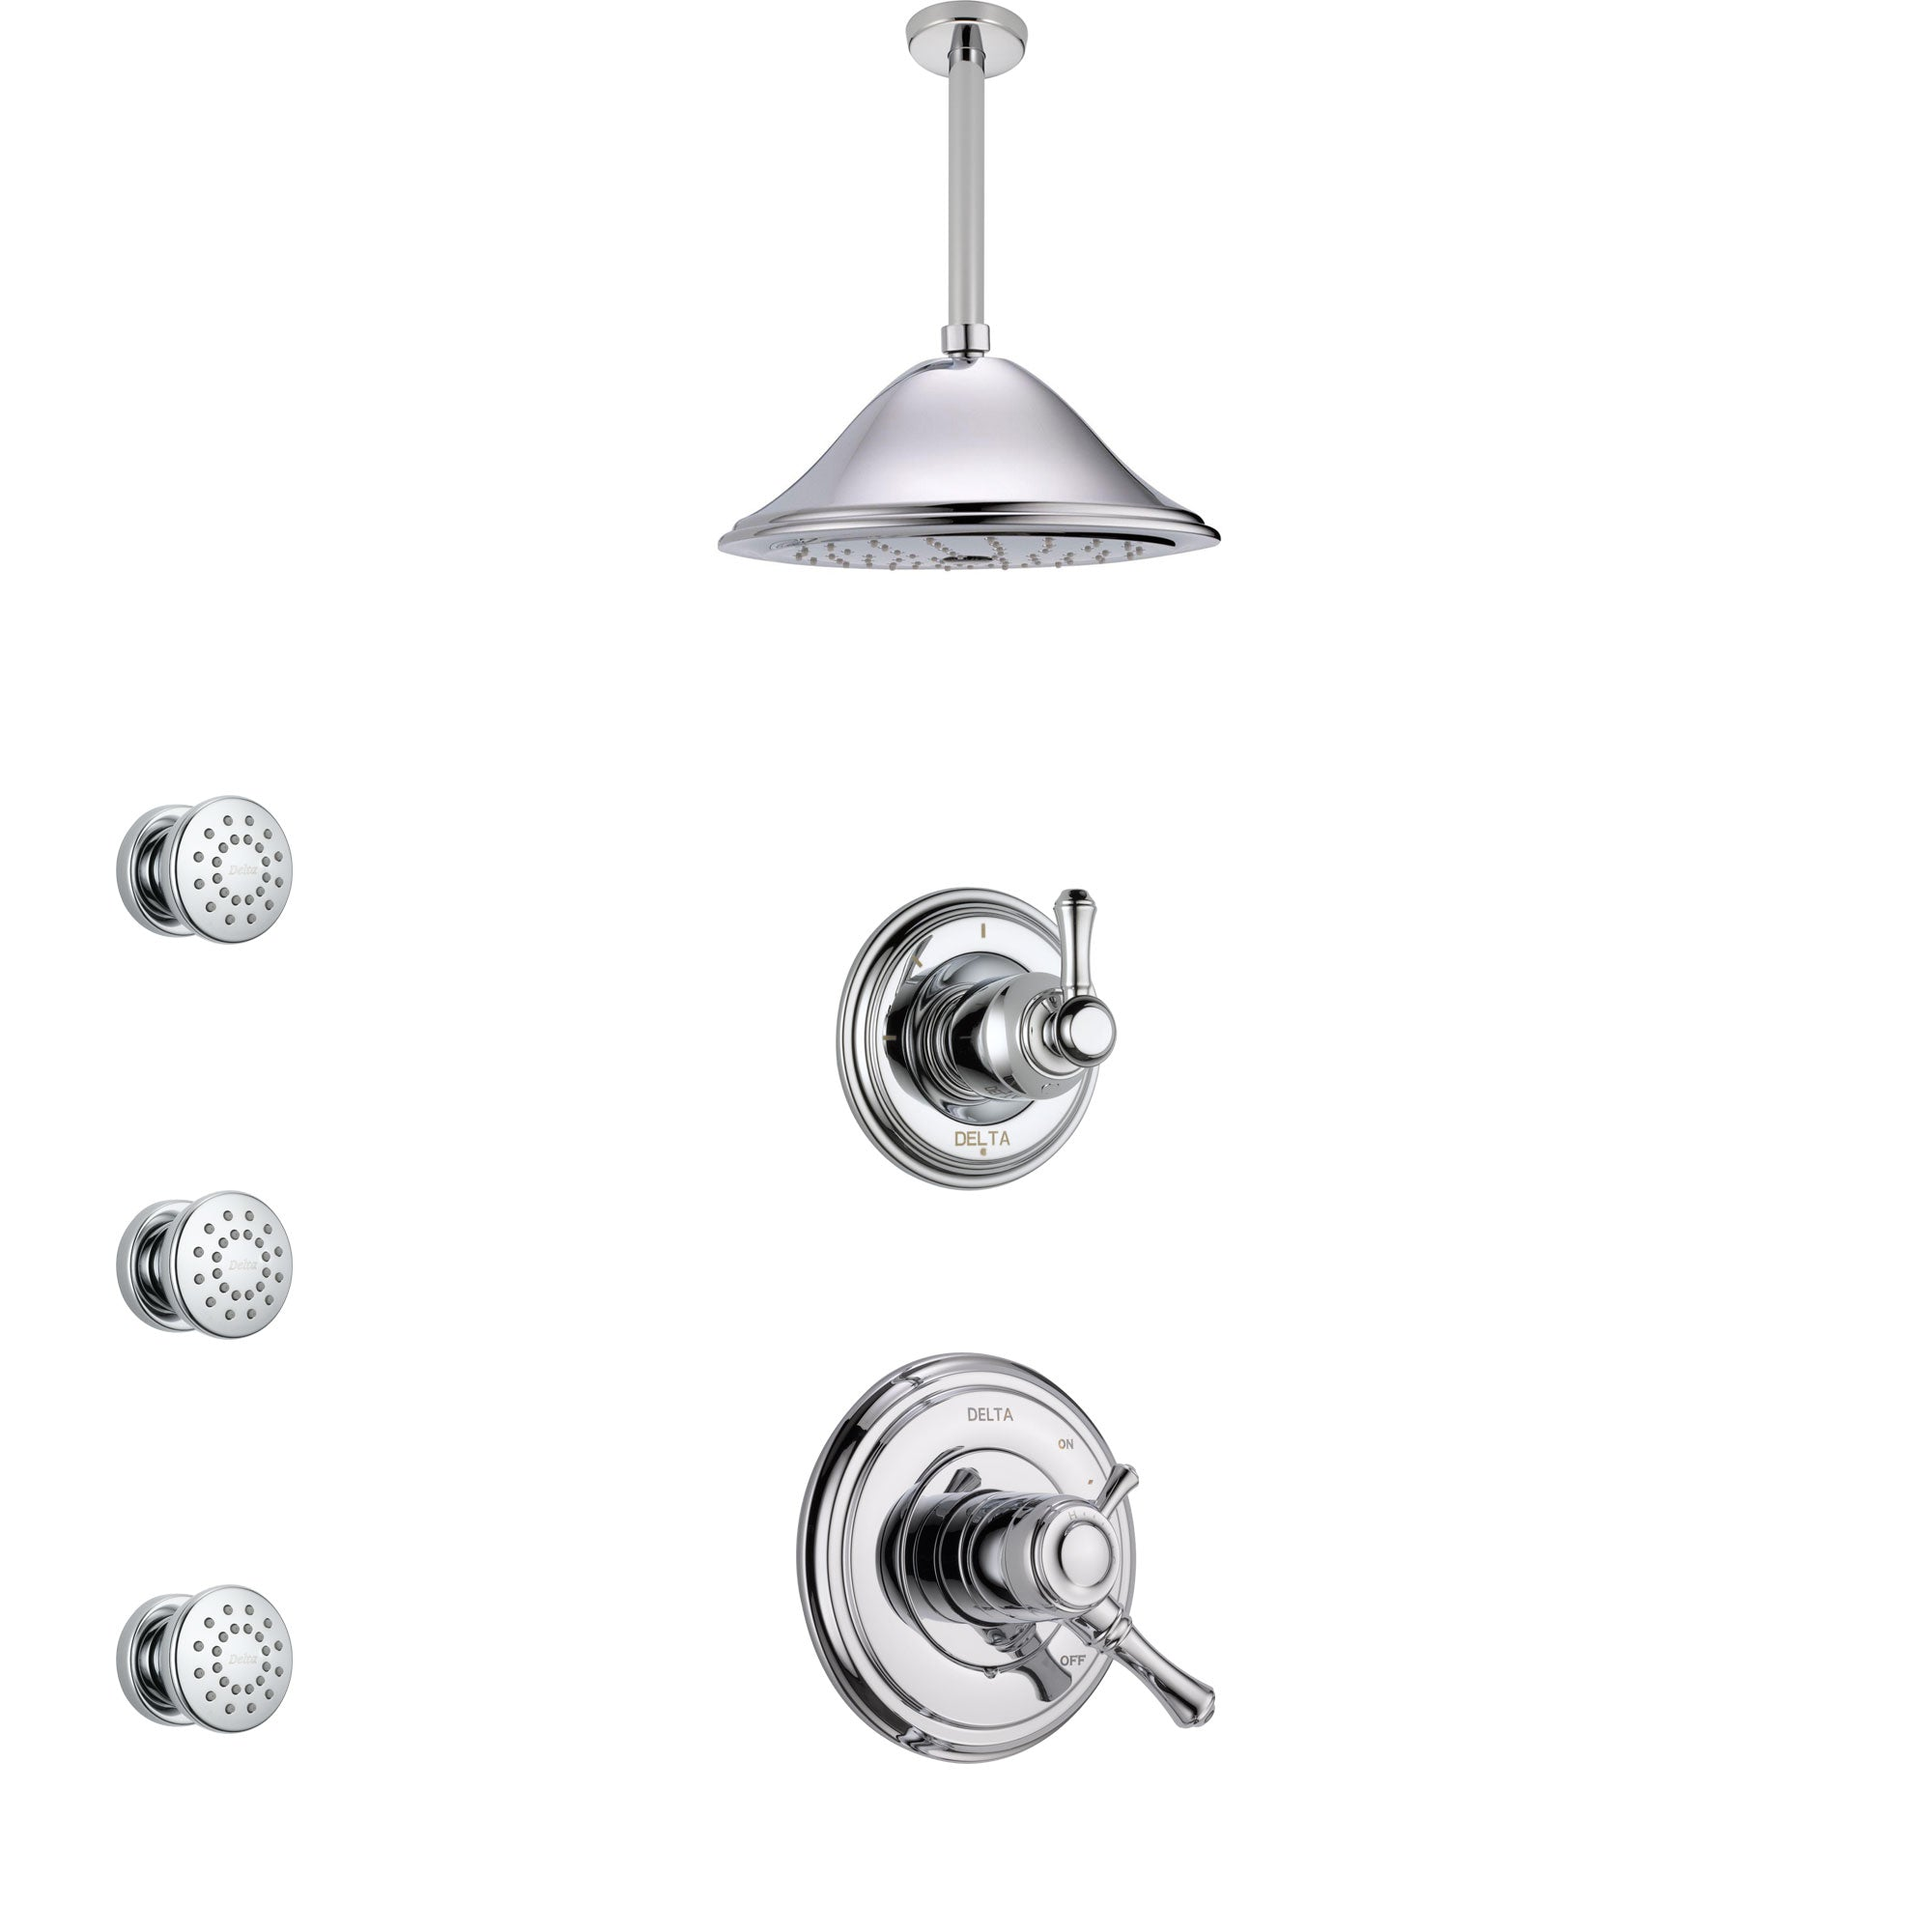 Delta Cassidy Chrome Finish Shower System with Dual Control Handle, 3-Setting Diverter, Ceiling Mount Showerhead, and 3 Body Sprays SS17975